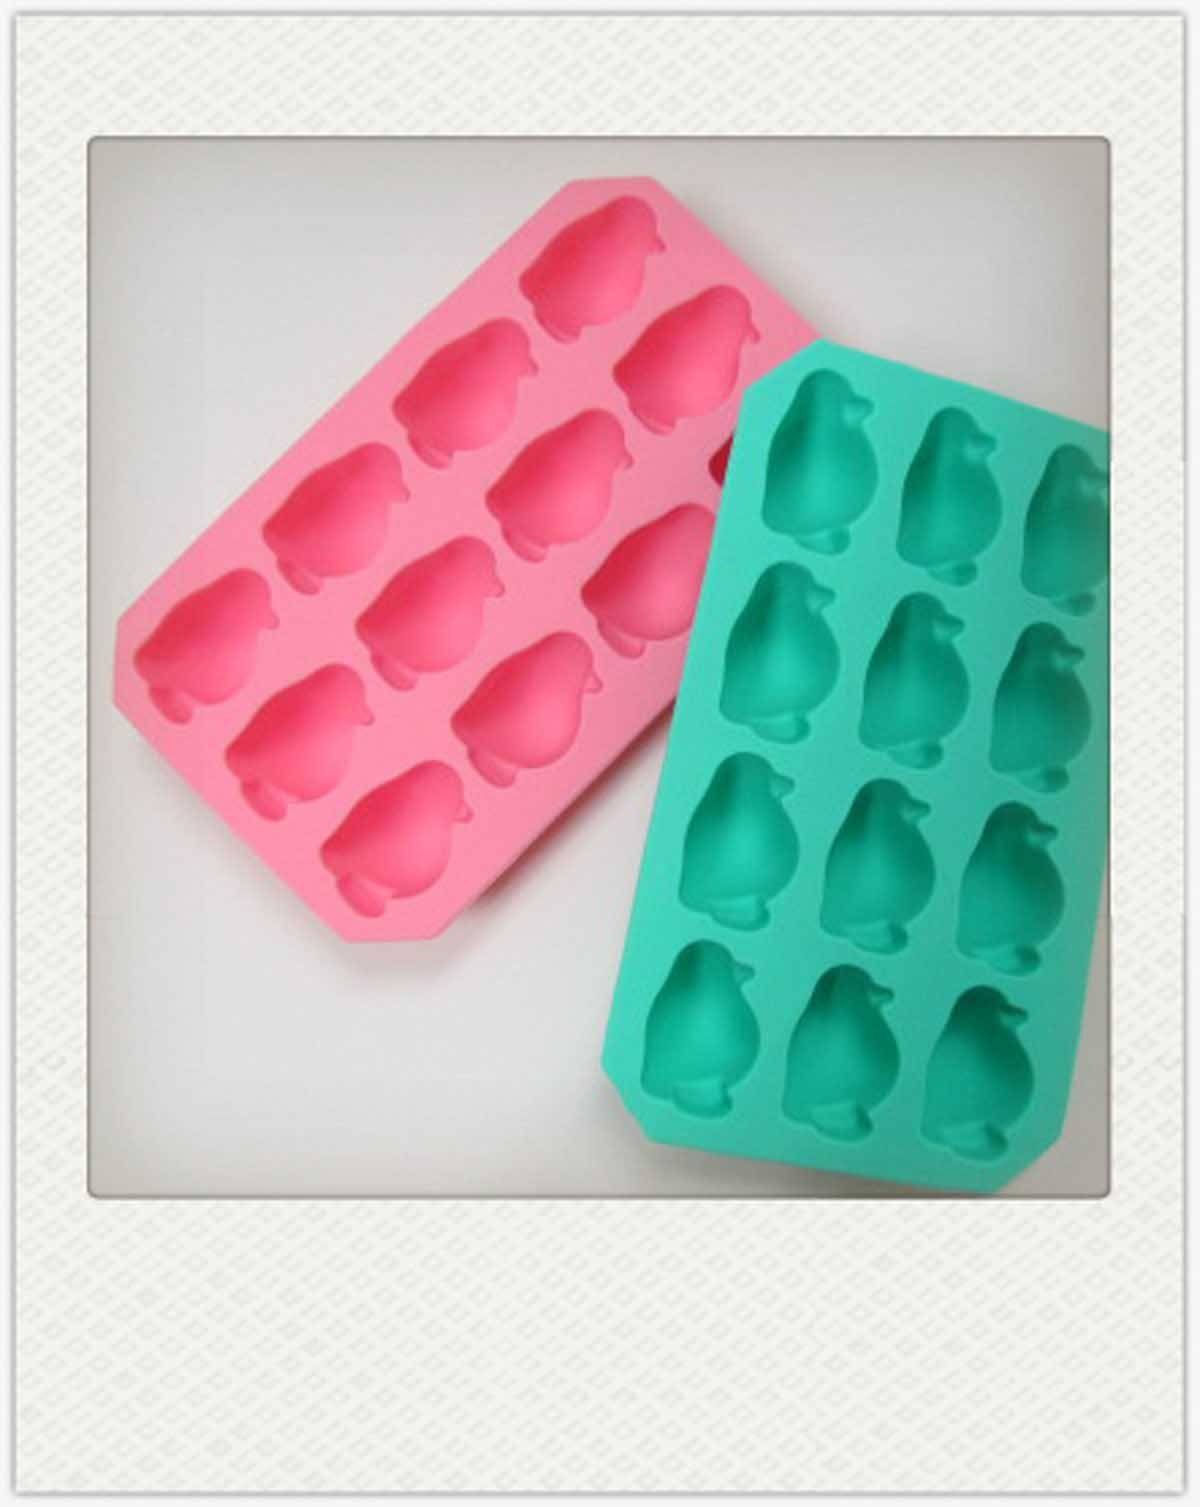 Silicone Penguin Ice Cube Tray Maker Jelly Mold Mould